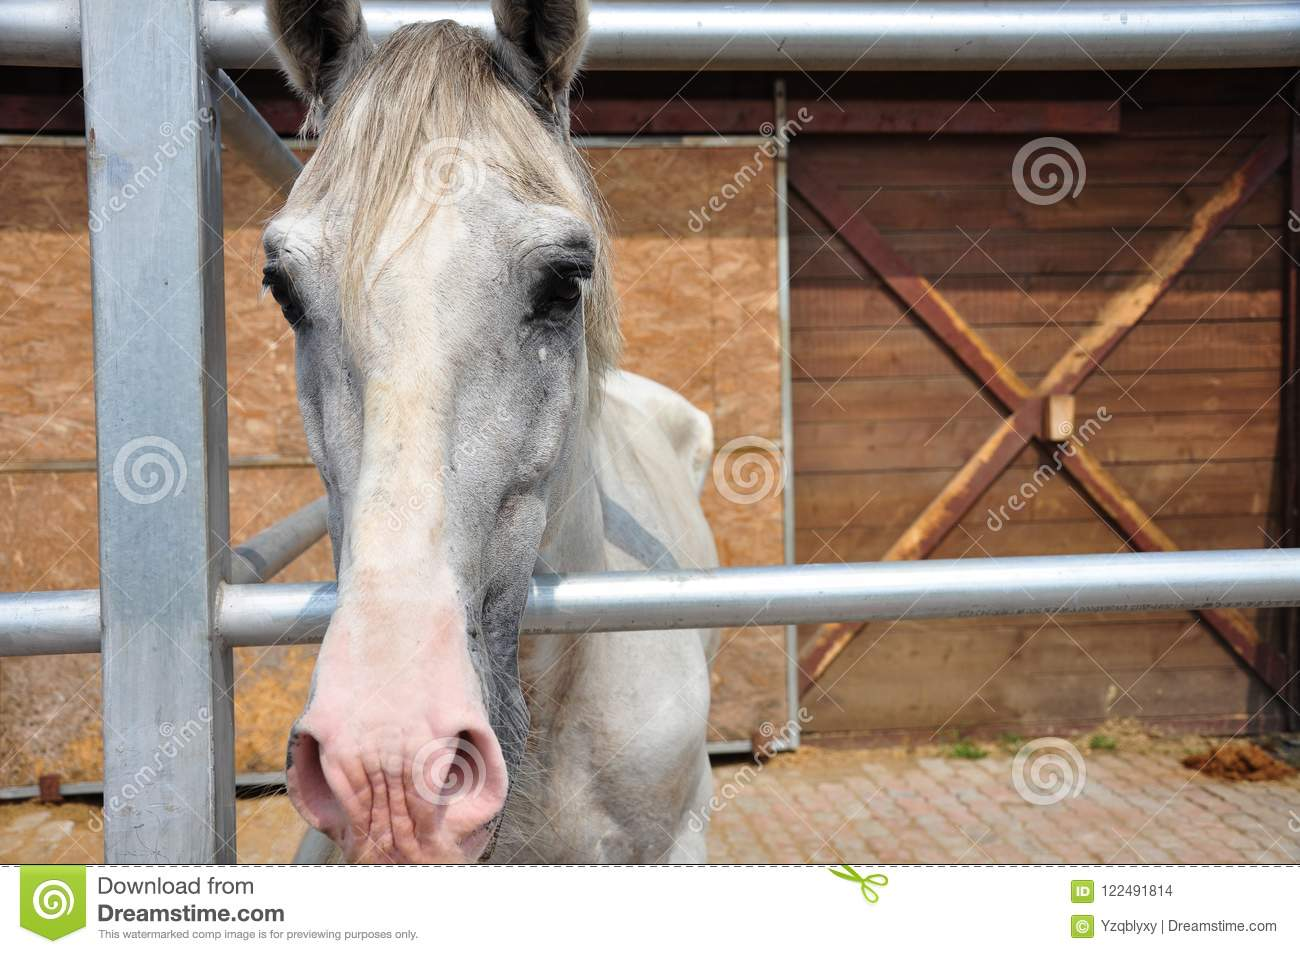 White Horse In Stable Stock Photo Image Of Equestrian 122491814